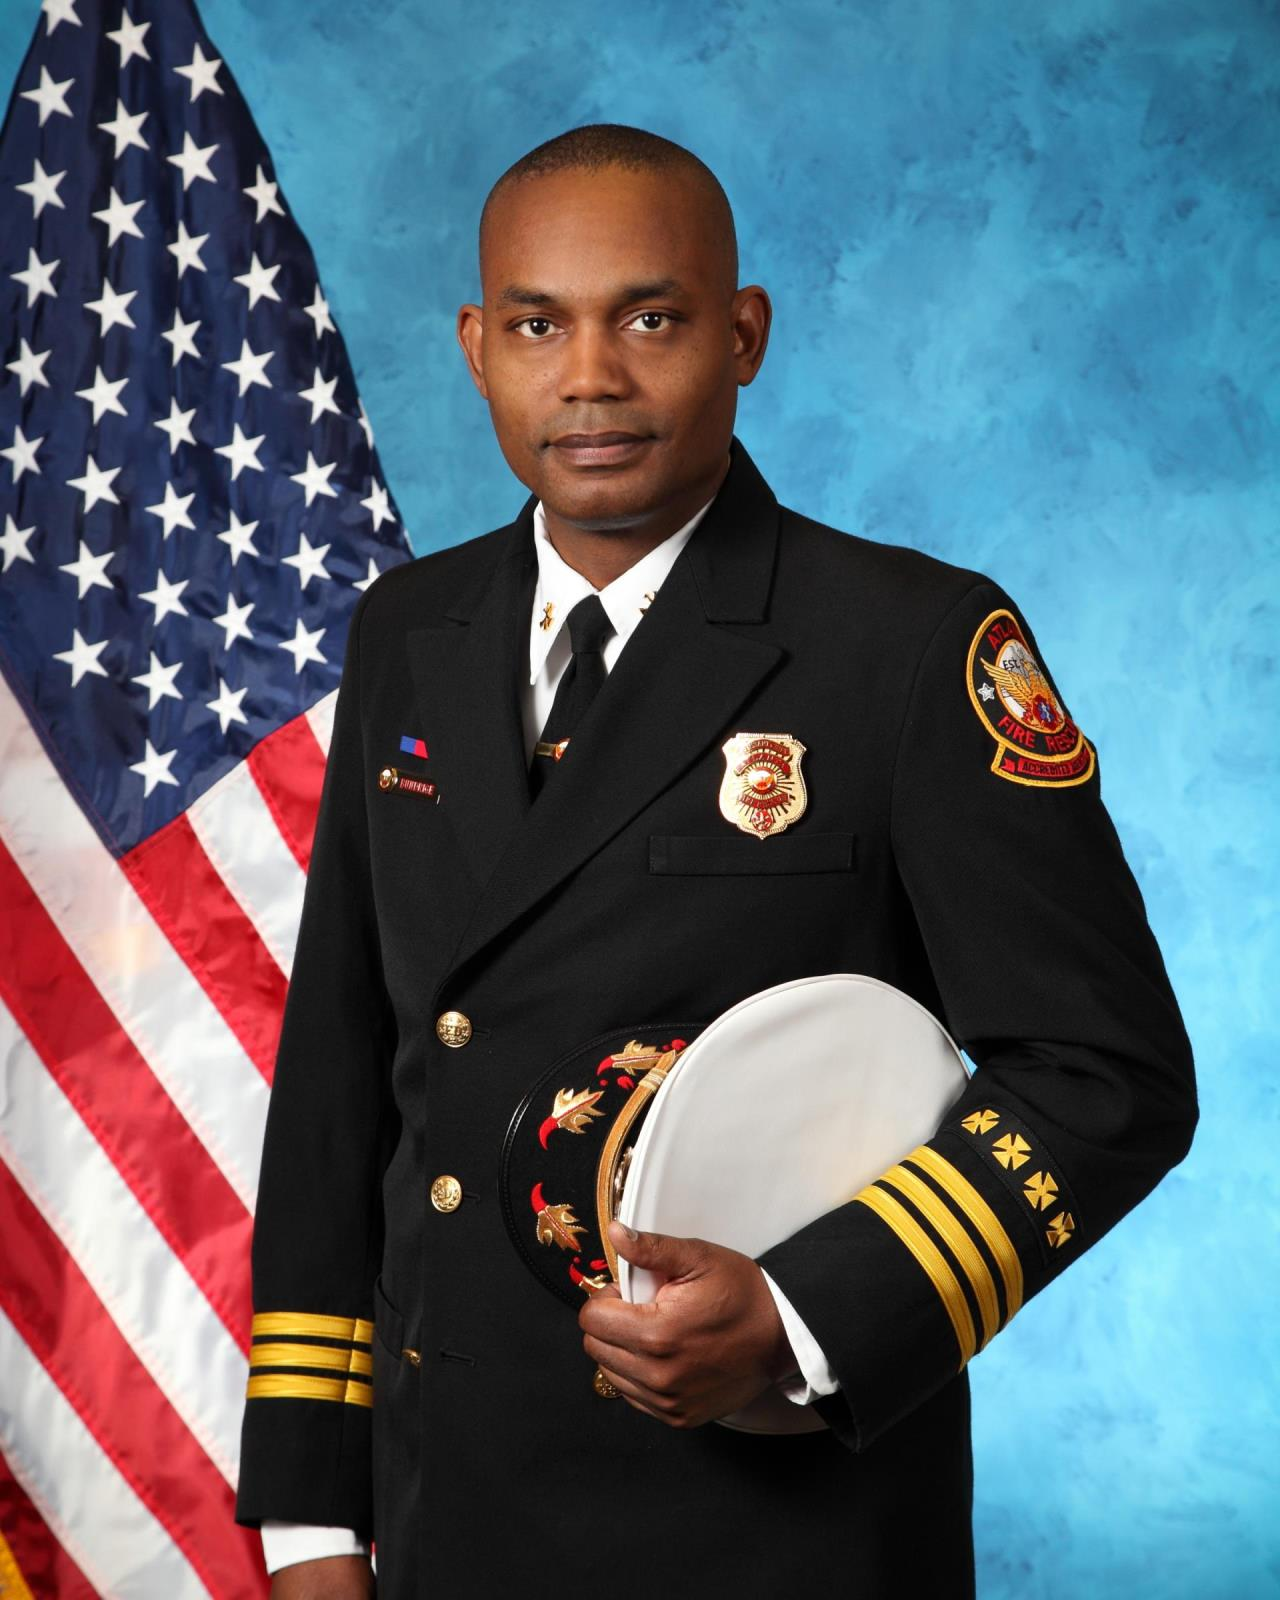 Assistant Chief Jolyon Bundrige